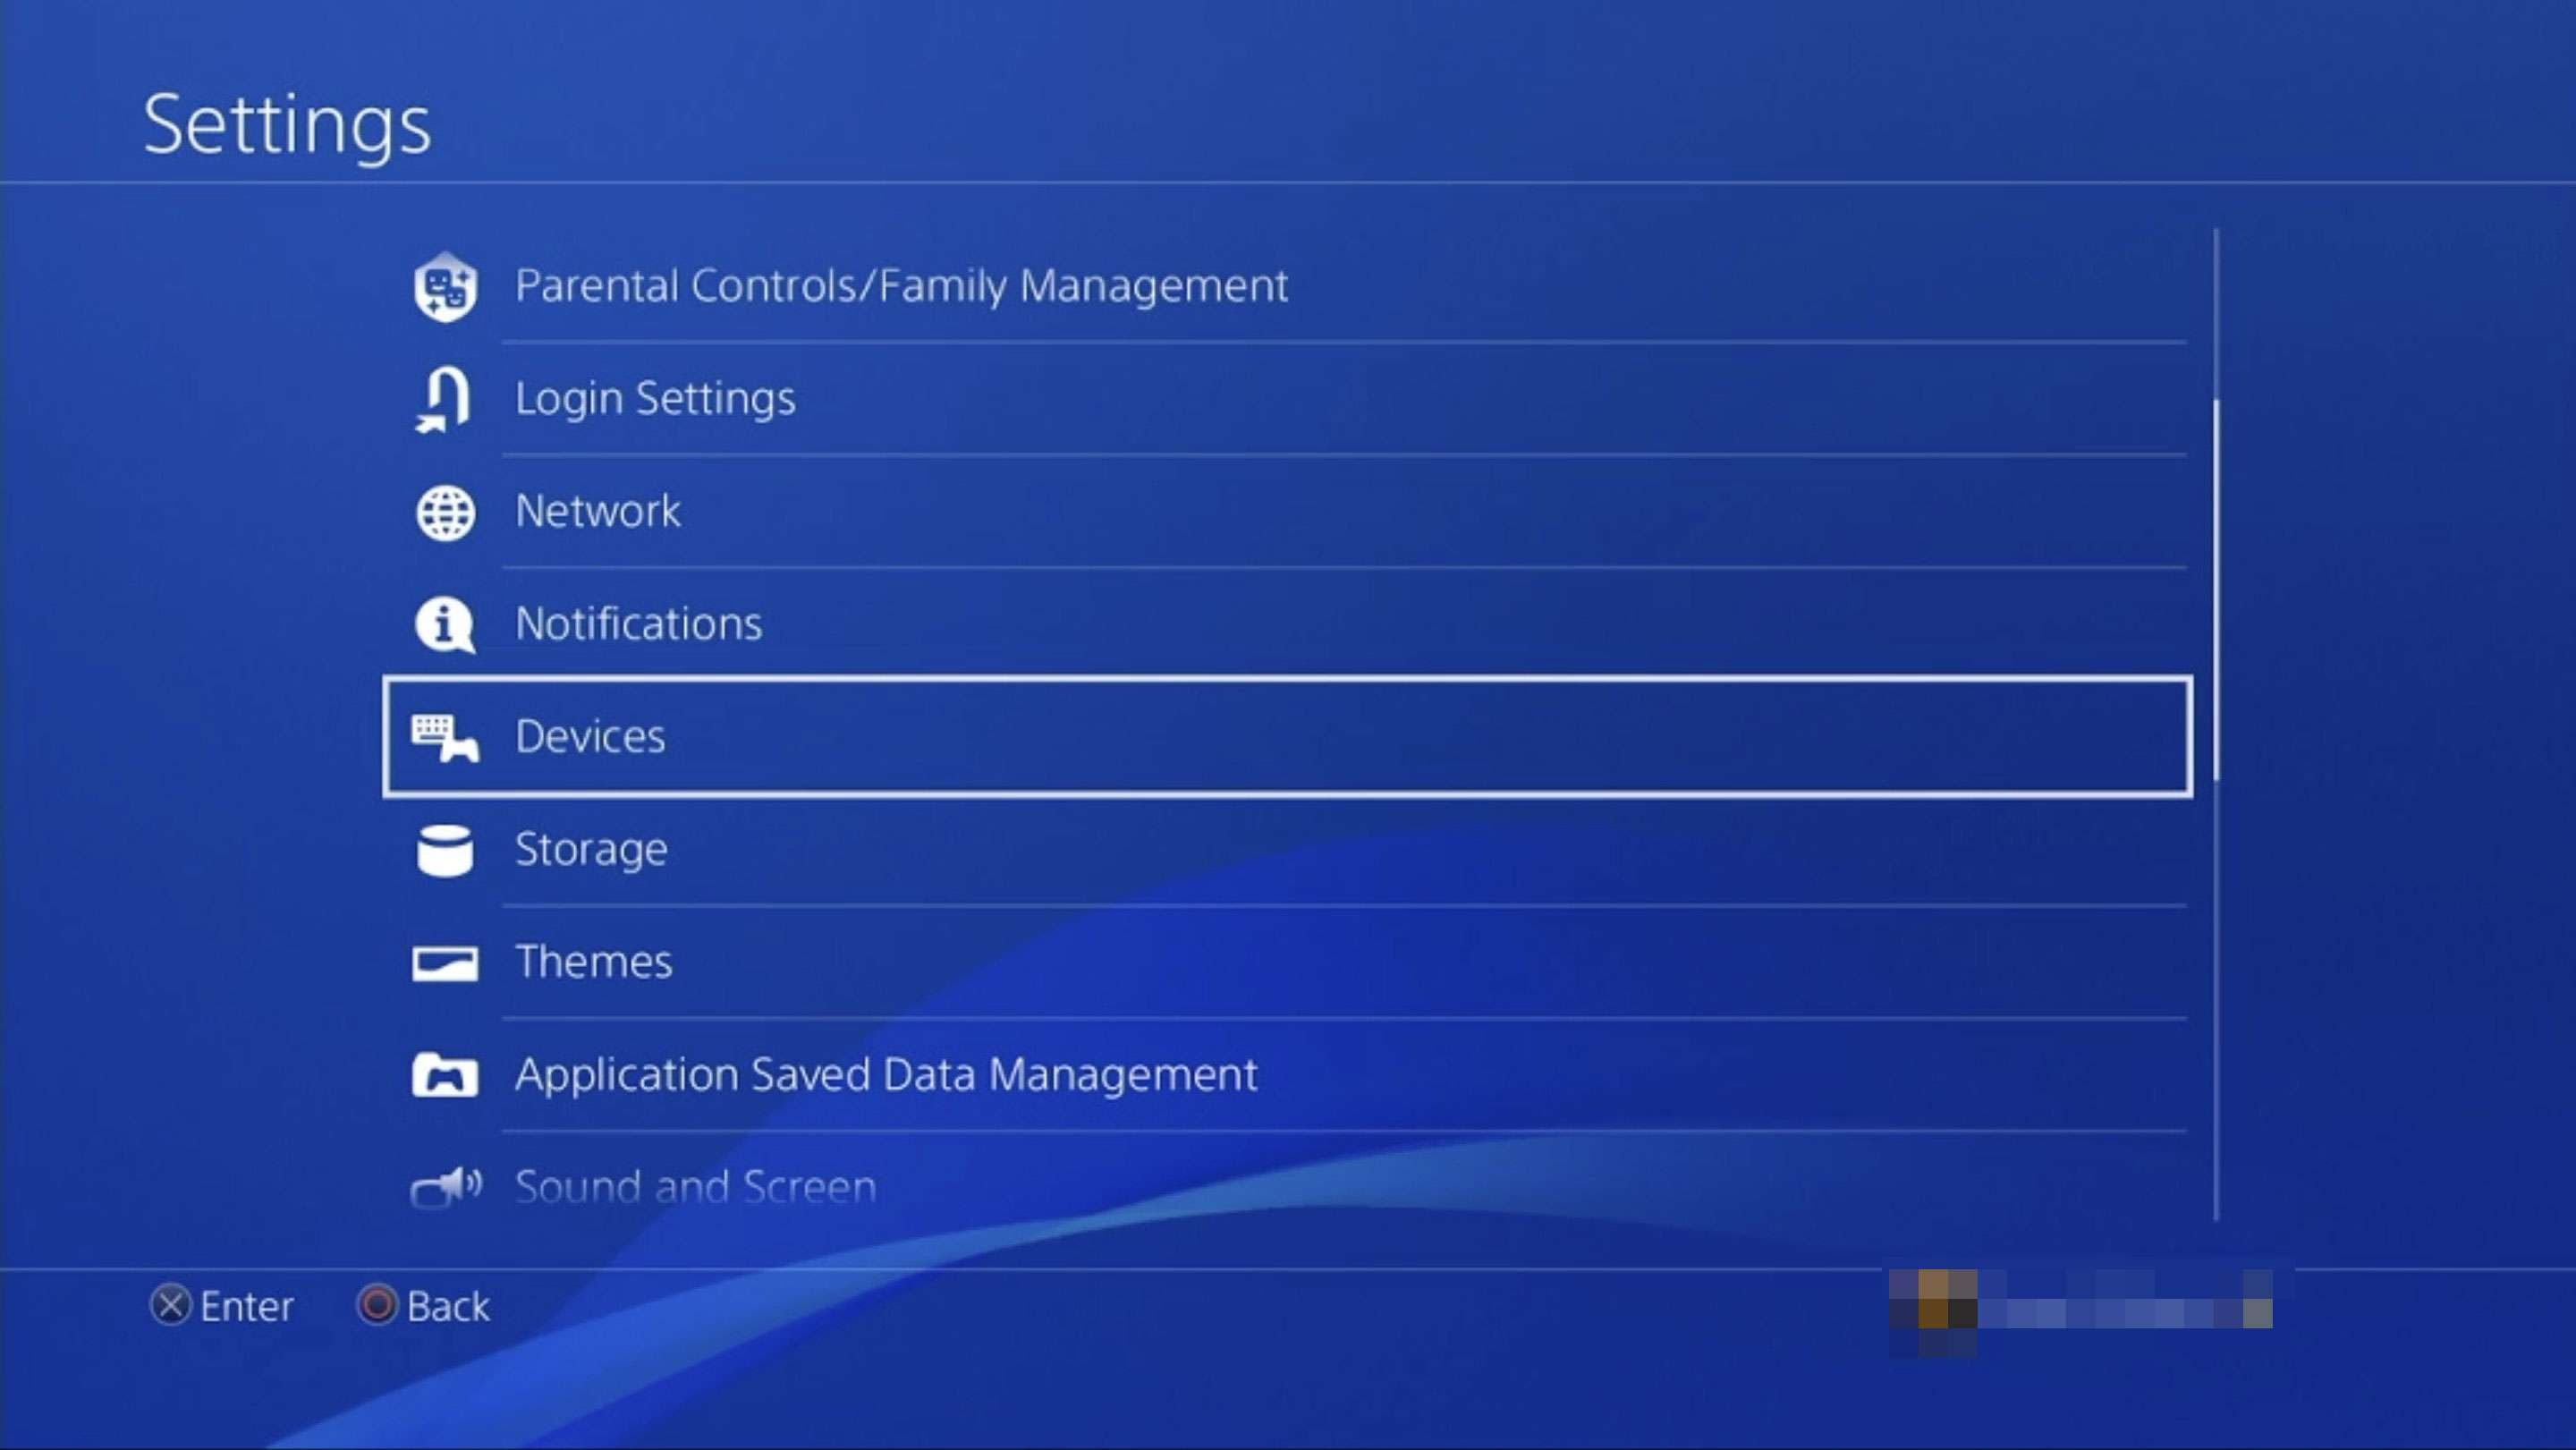 A screenshot of PS4 settings with the Devices section highlighted